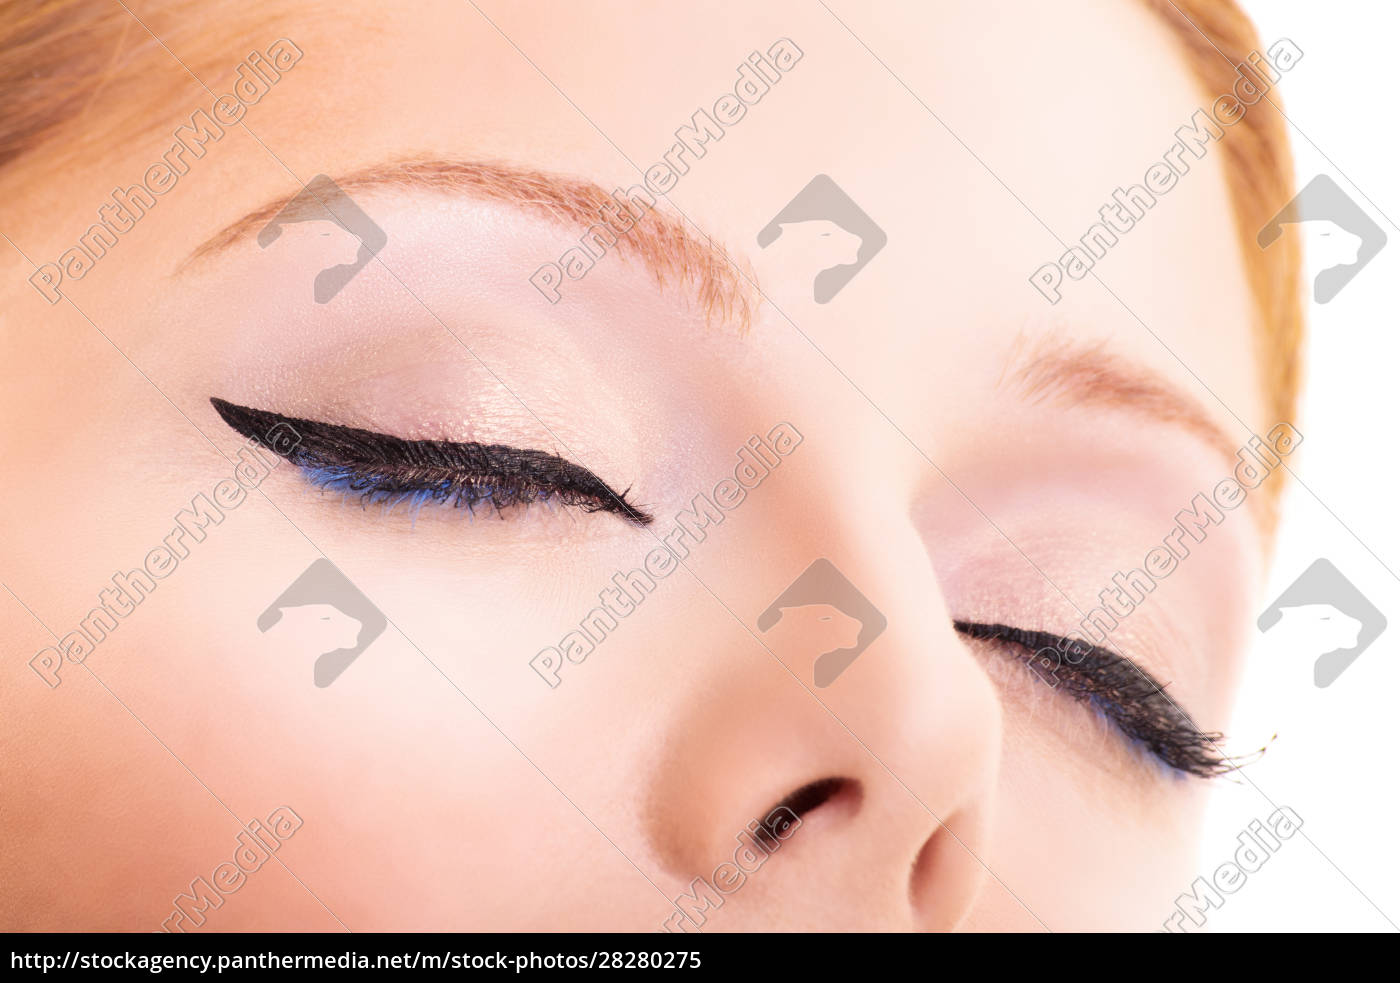 close-up, of, closed, eyes, with, black - 28280275